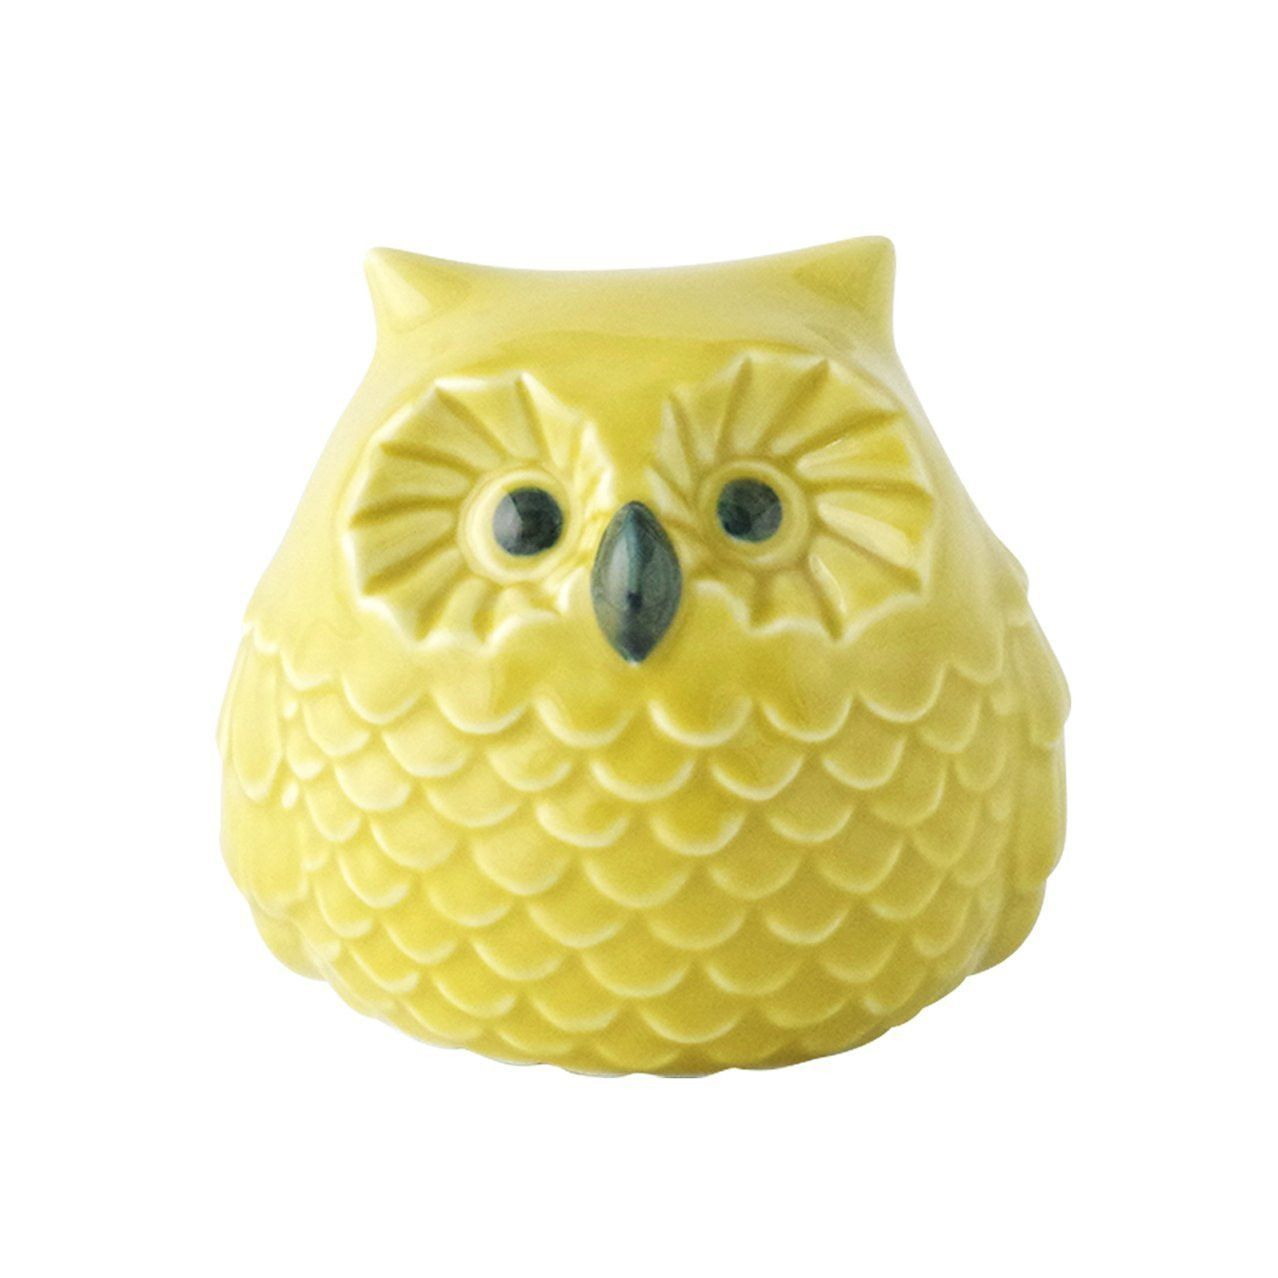 Arita Porcelain Lucky Bird 'Yellow OWL' ornament Large 10cm